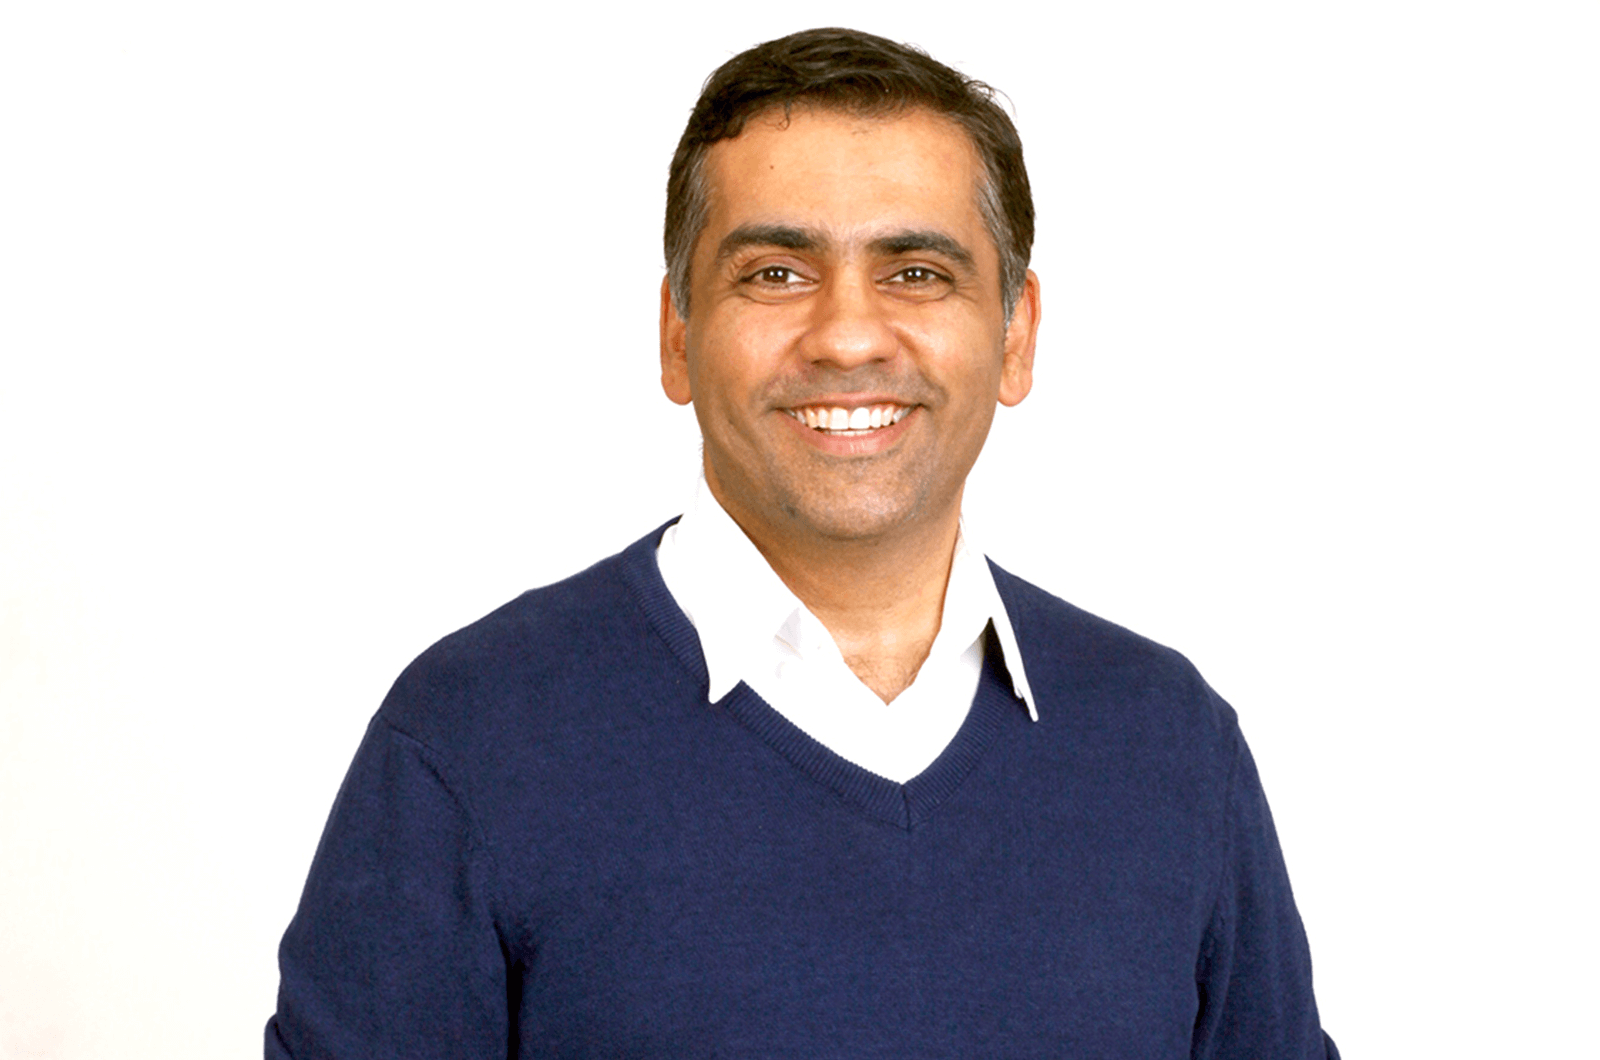 Man in blue sweater standing and smiling